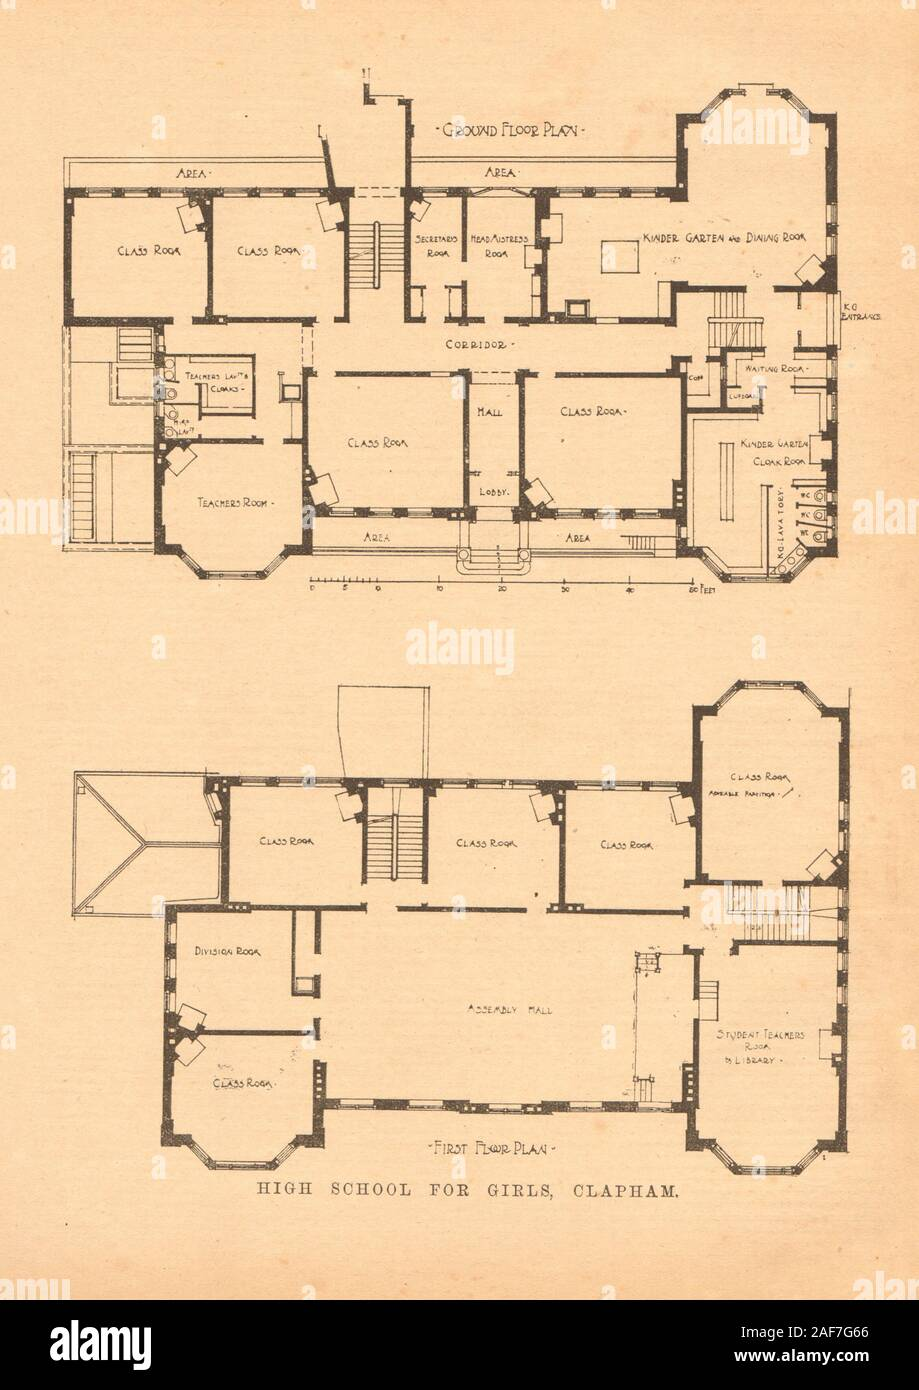 Building Floor Plan High Resolution Stock Photography And Images Alamy